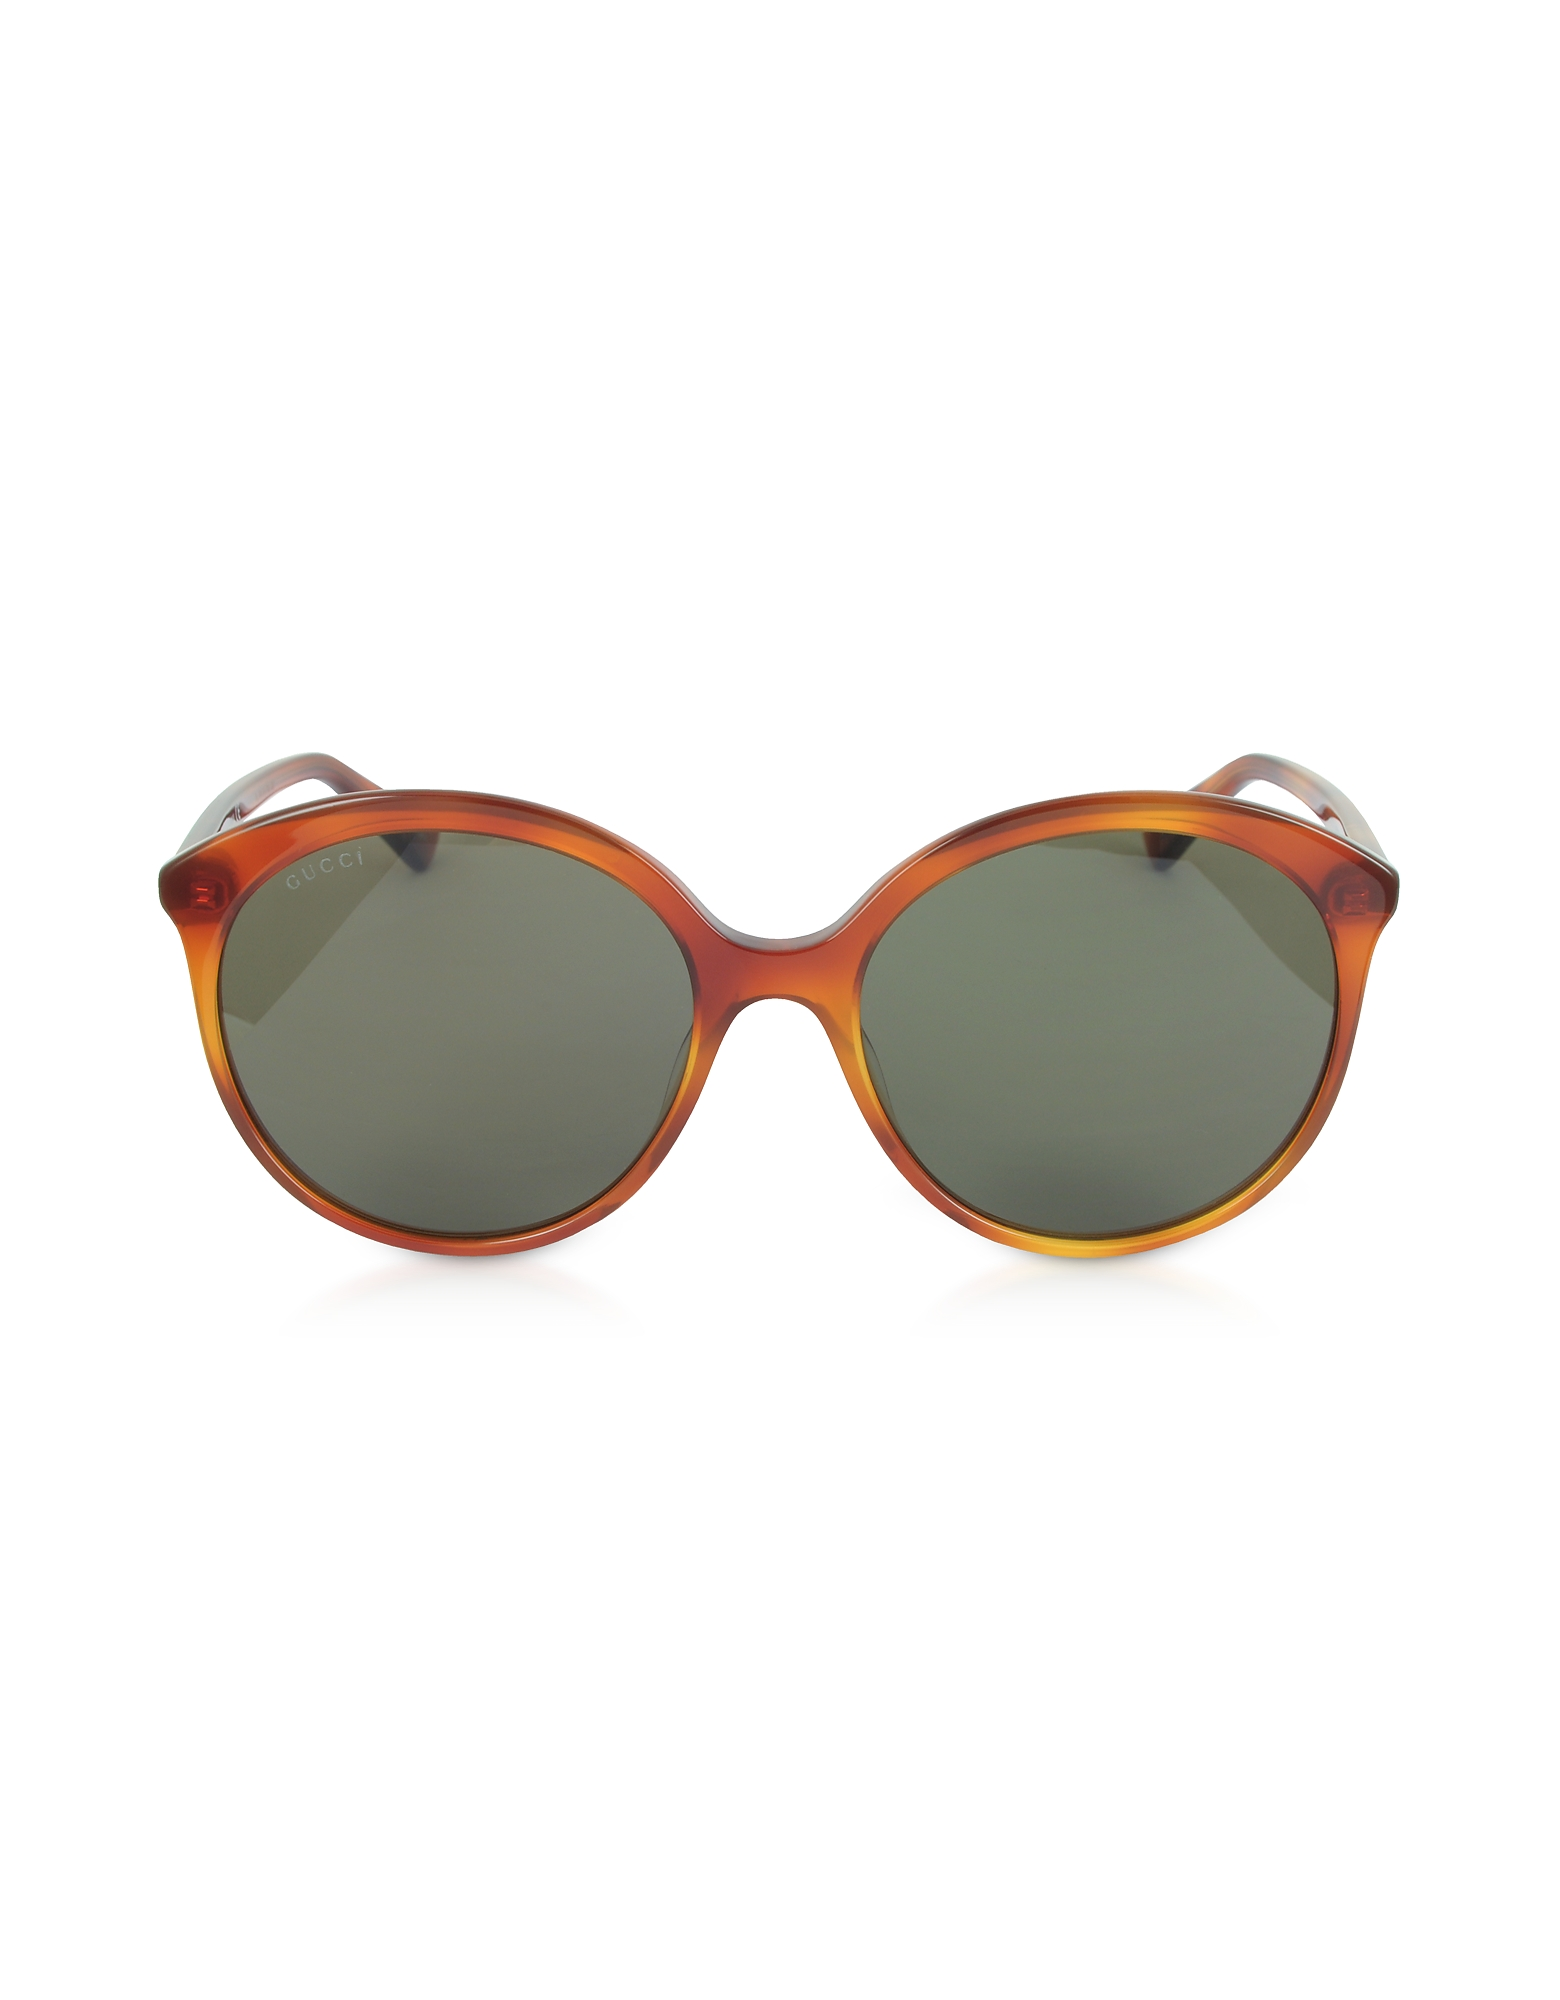 Gucci Sunglasses, GG0257S Specialized Fit Round-frame Havana Brown Acetate Sunglasses